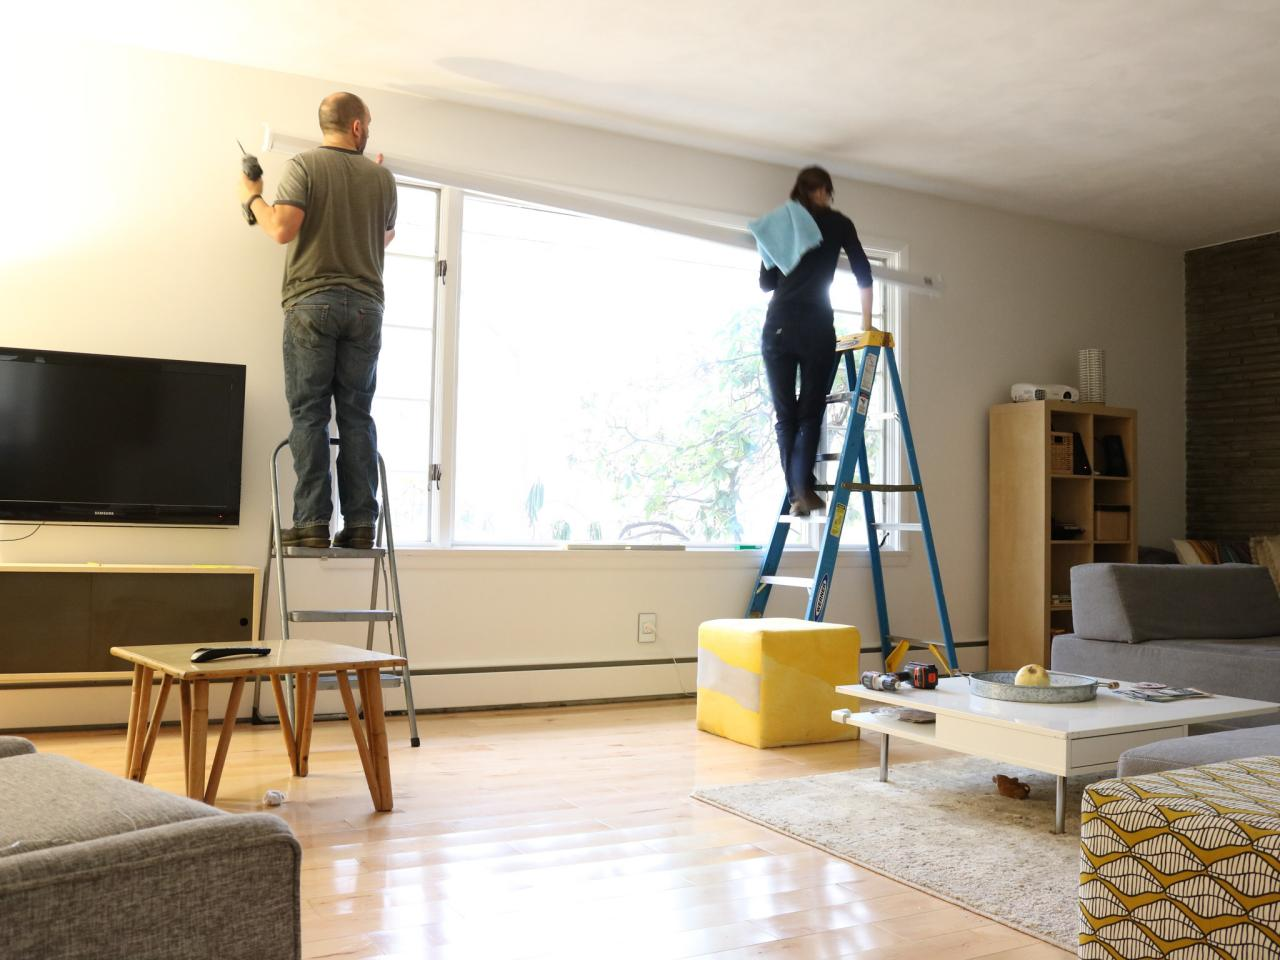 Learn How to Install a Media Room Projector Screen | how-tos | DIY